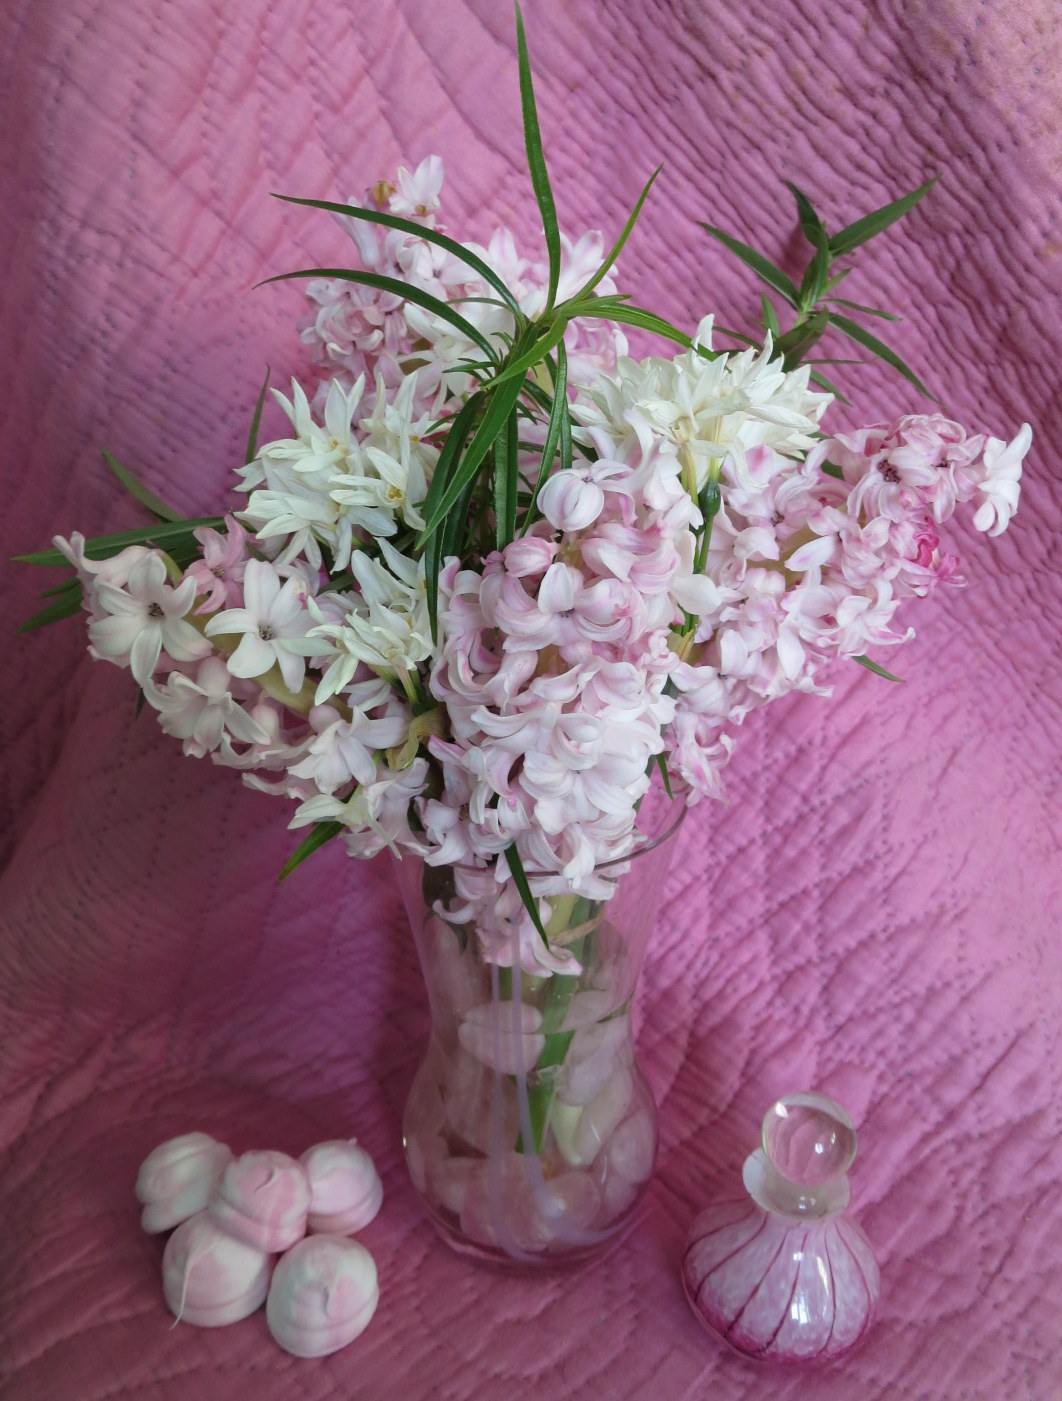 In a Vase on Monday: Marshmallow Fluff | Rambling in the Garden